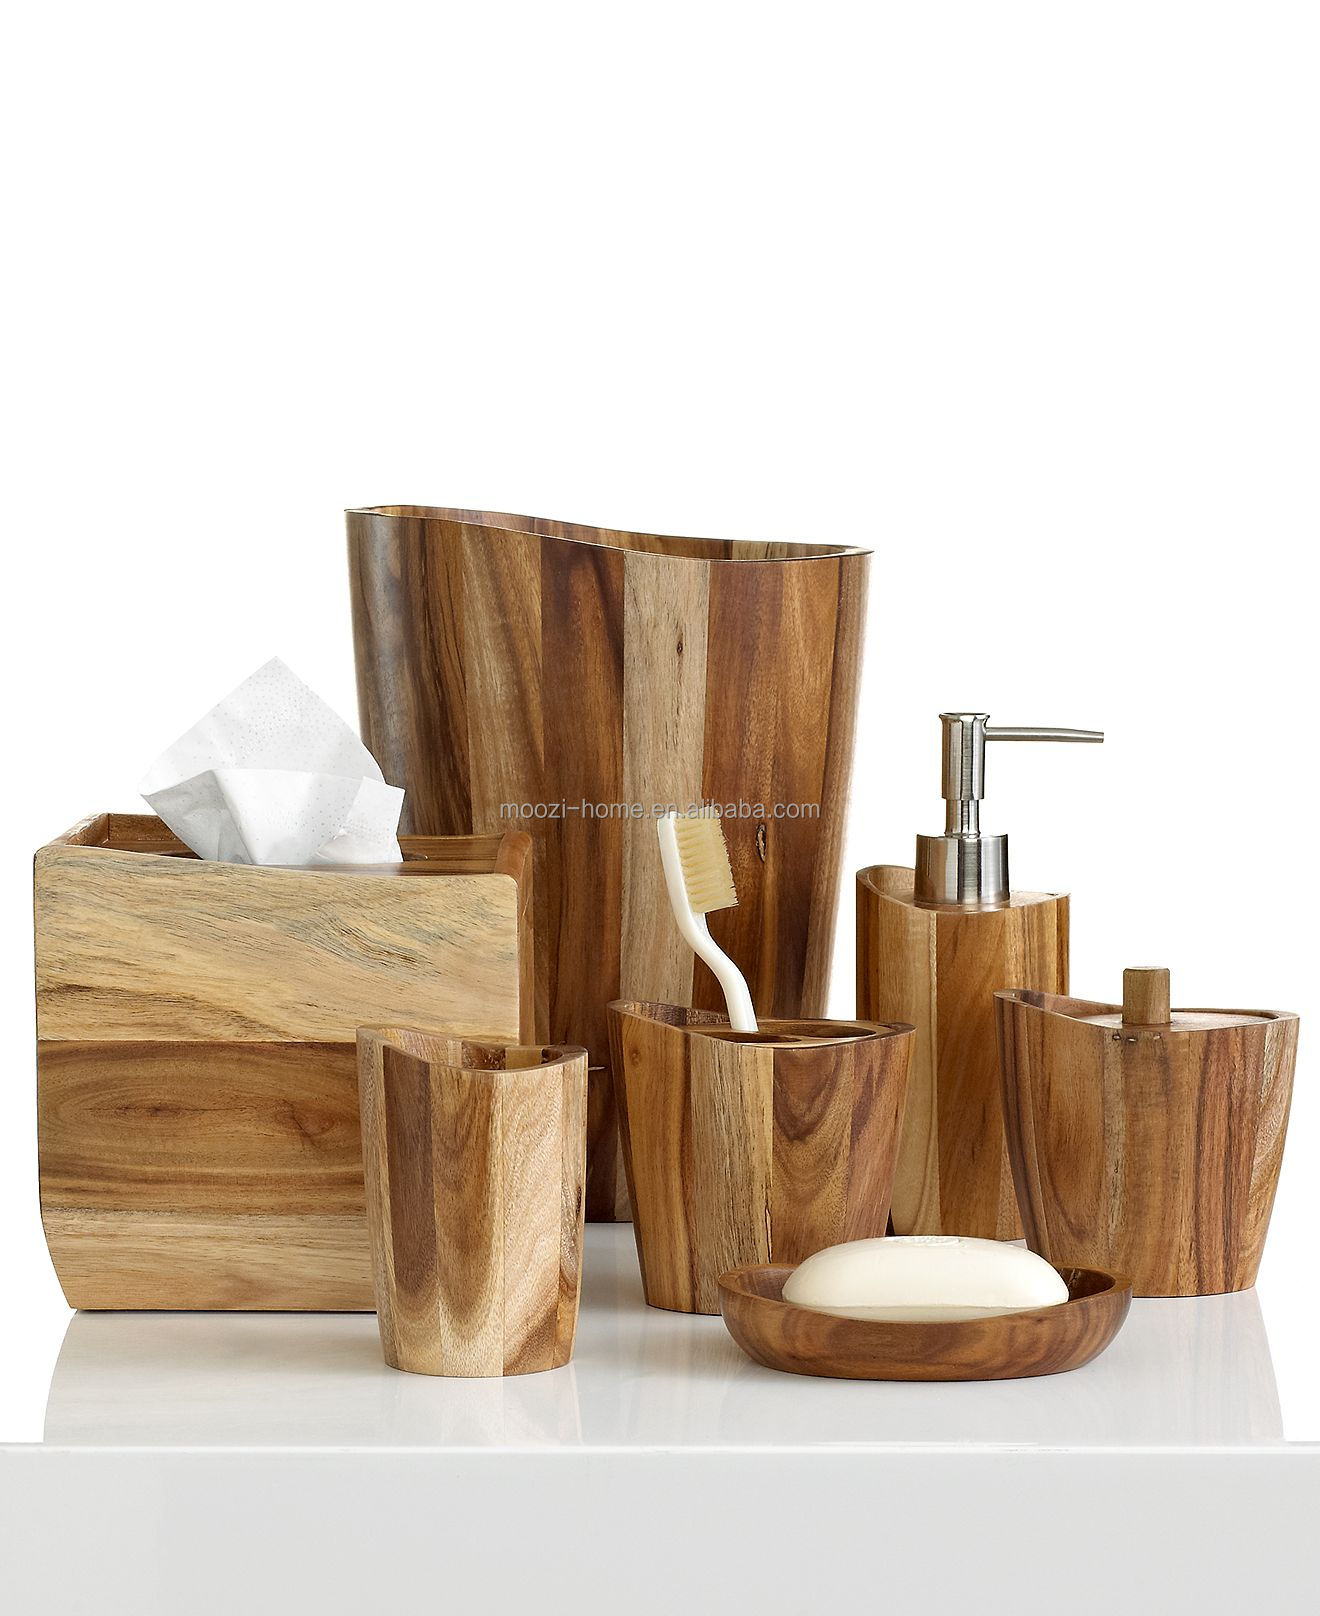 natural wooden bath sets wood bathroom accessories products buy natural wooden bath sets